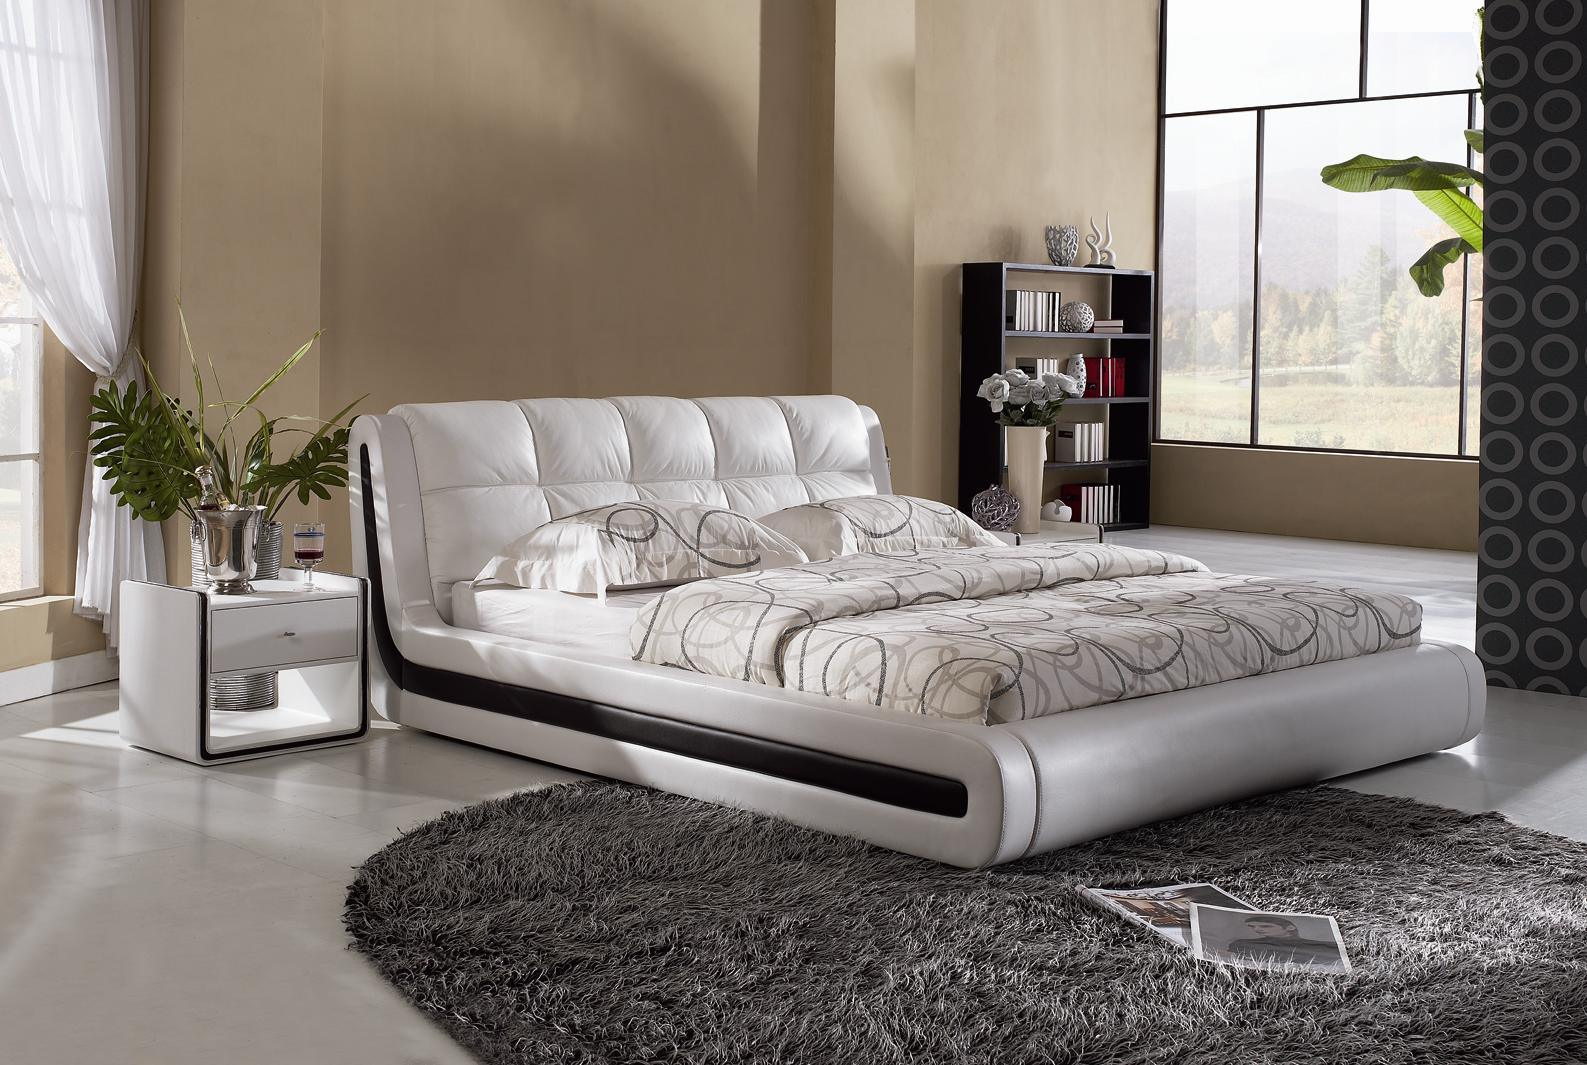 Modern beds design pictures simple home decoration for Bed designs 2016